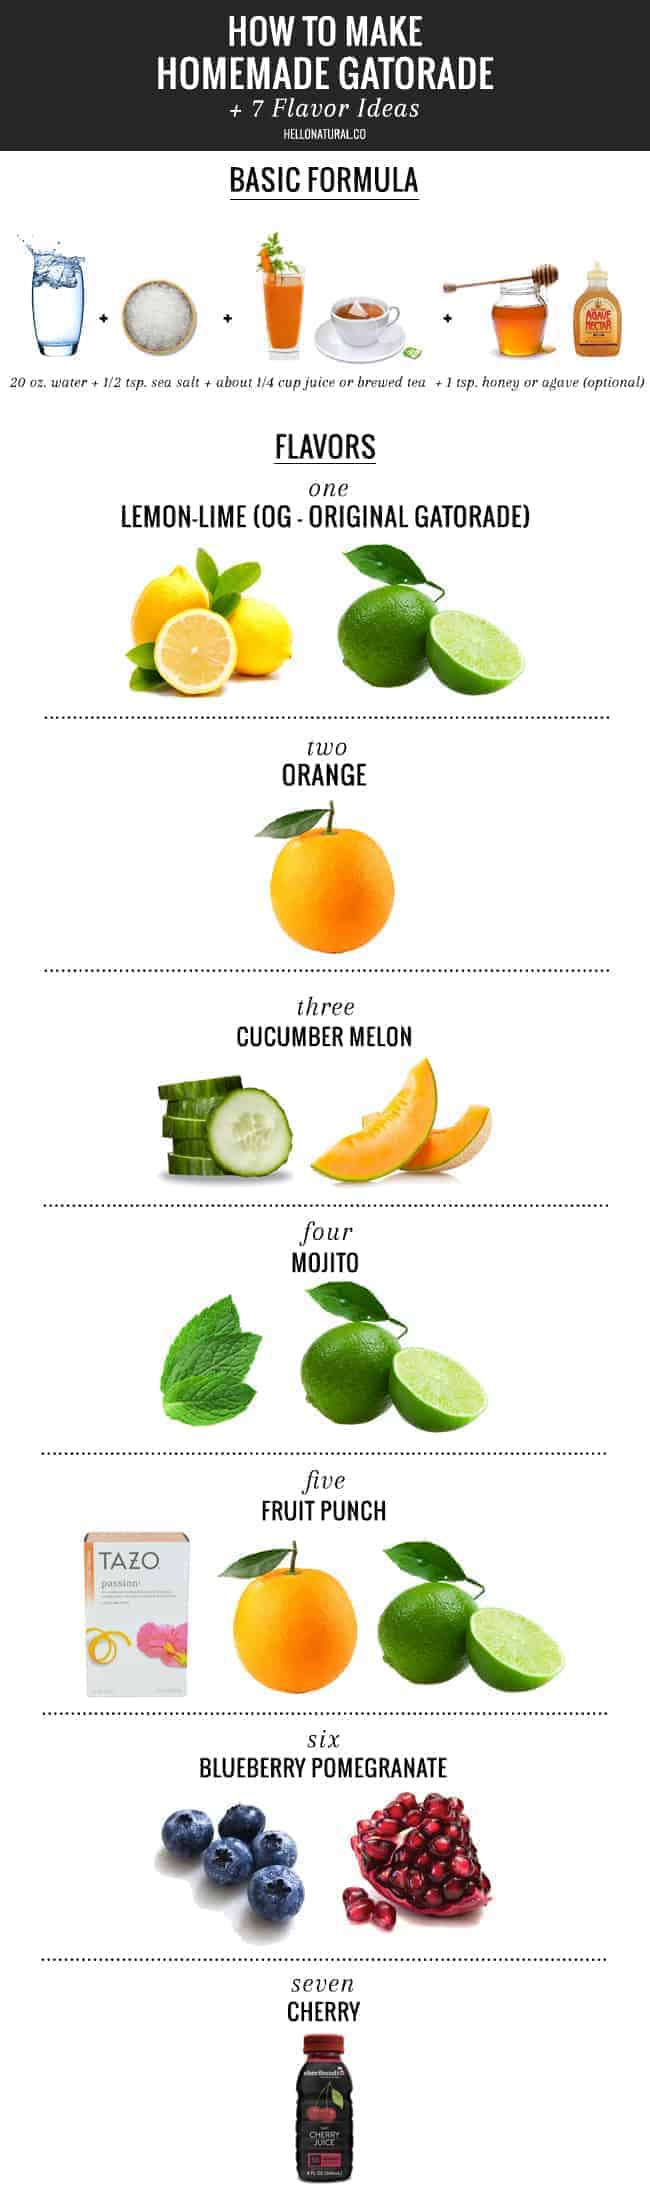 Homemade Gatorade + 7 Flavor Ideas